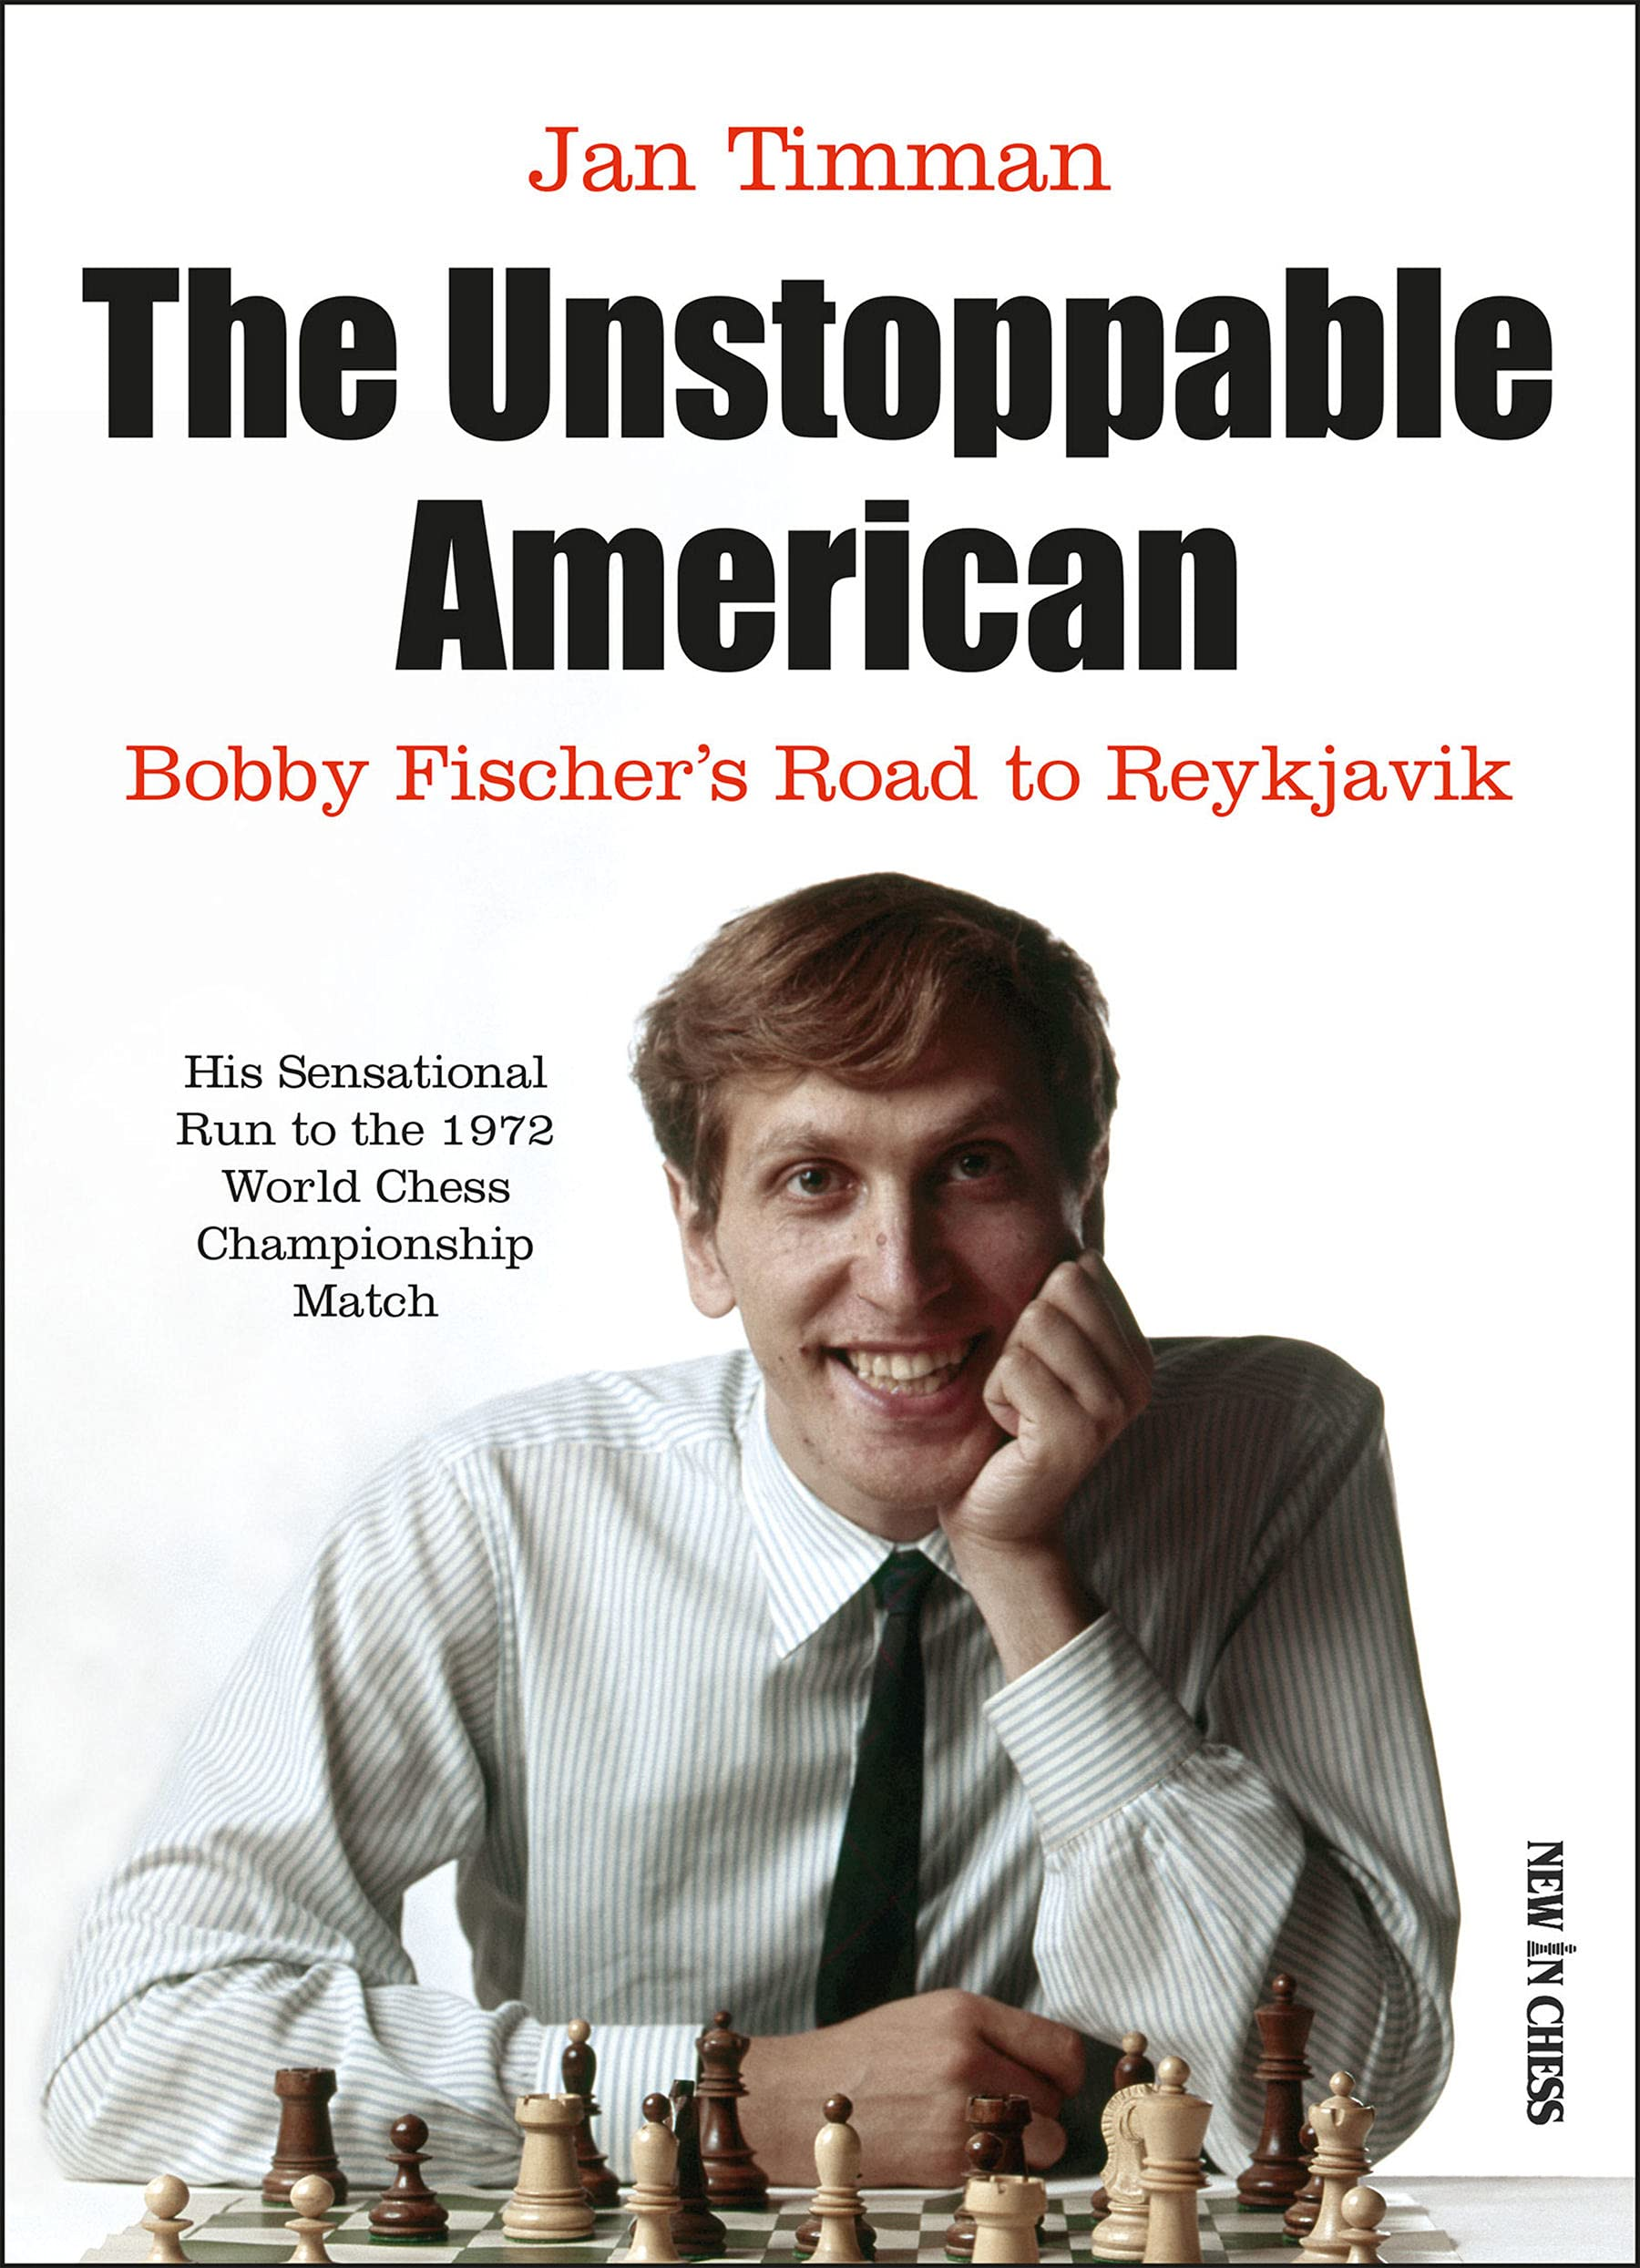 The Unstoppable American : Bobby Fischer's Road to Reykjavik, Jan Timman, New in Chess, 17th May 2021, ISBN-13  :  978-9056919788